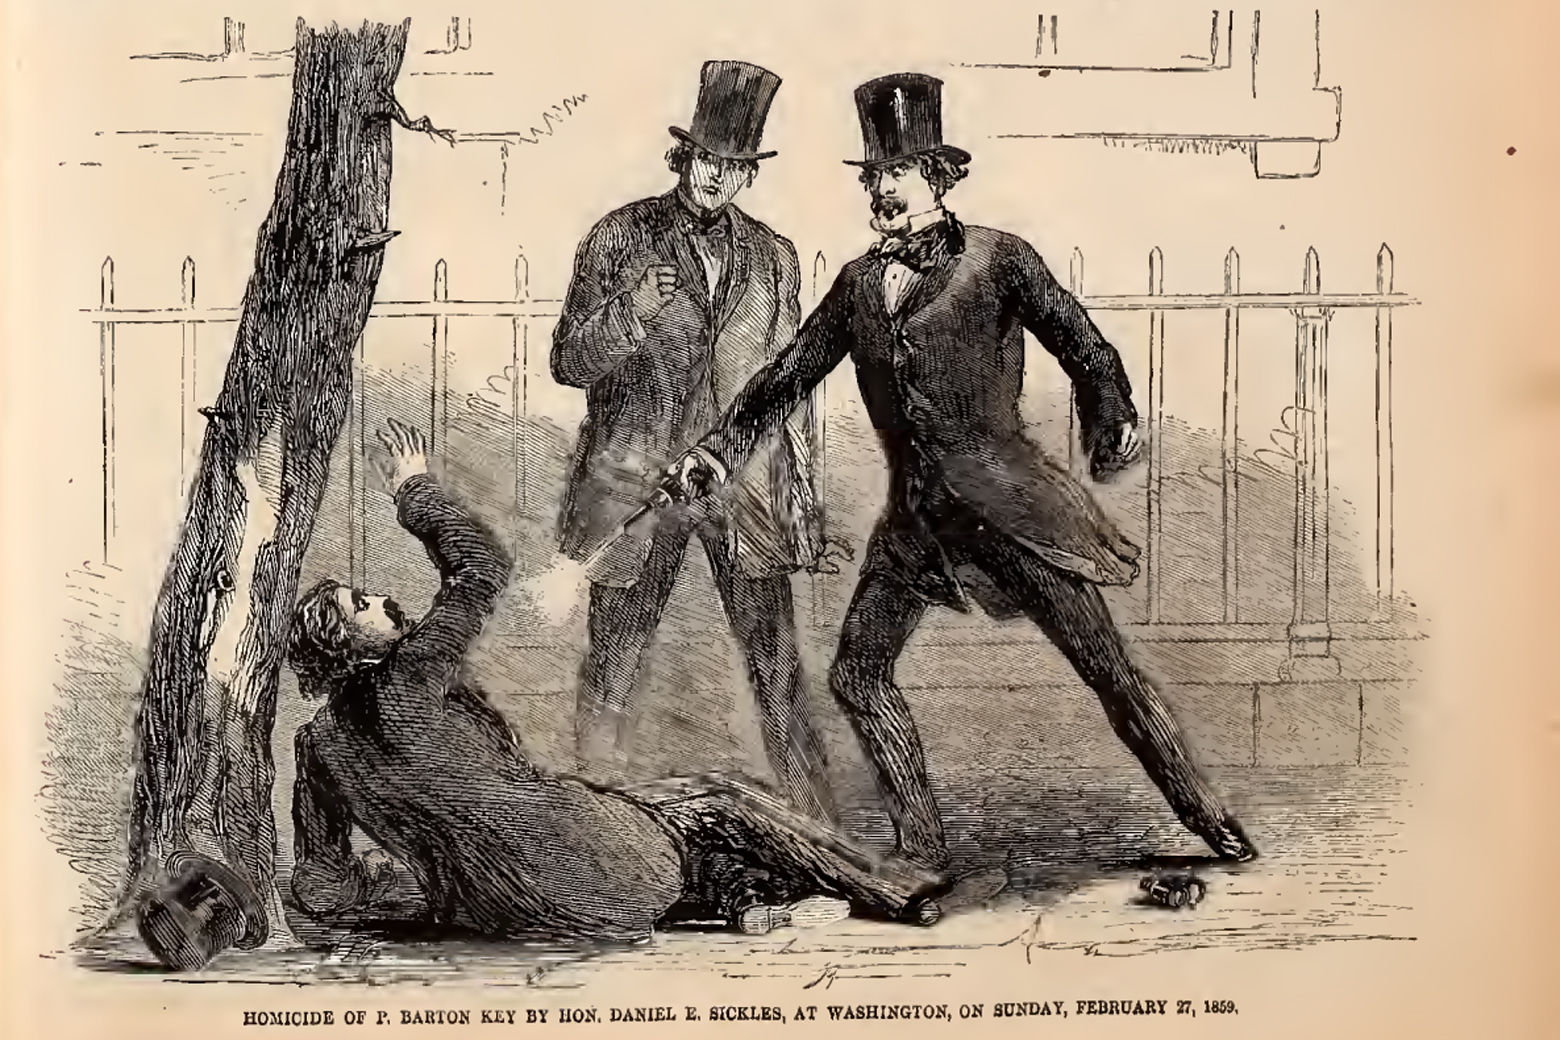 A Harper's Weekly illustration of the shooting of Philip Barton Key at the hands of U.S. Rep. Daniel Sickles (D-N.Y.) in 1859.